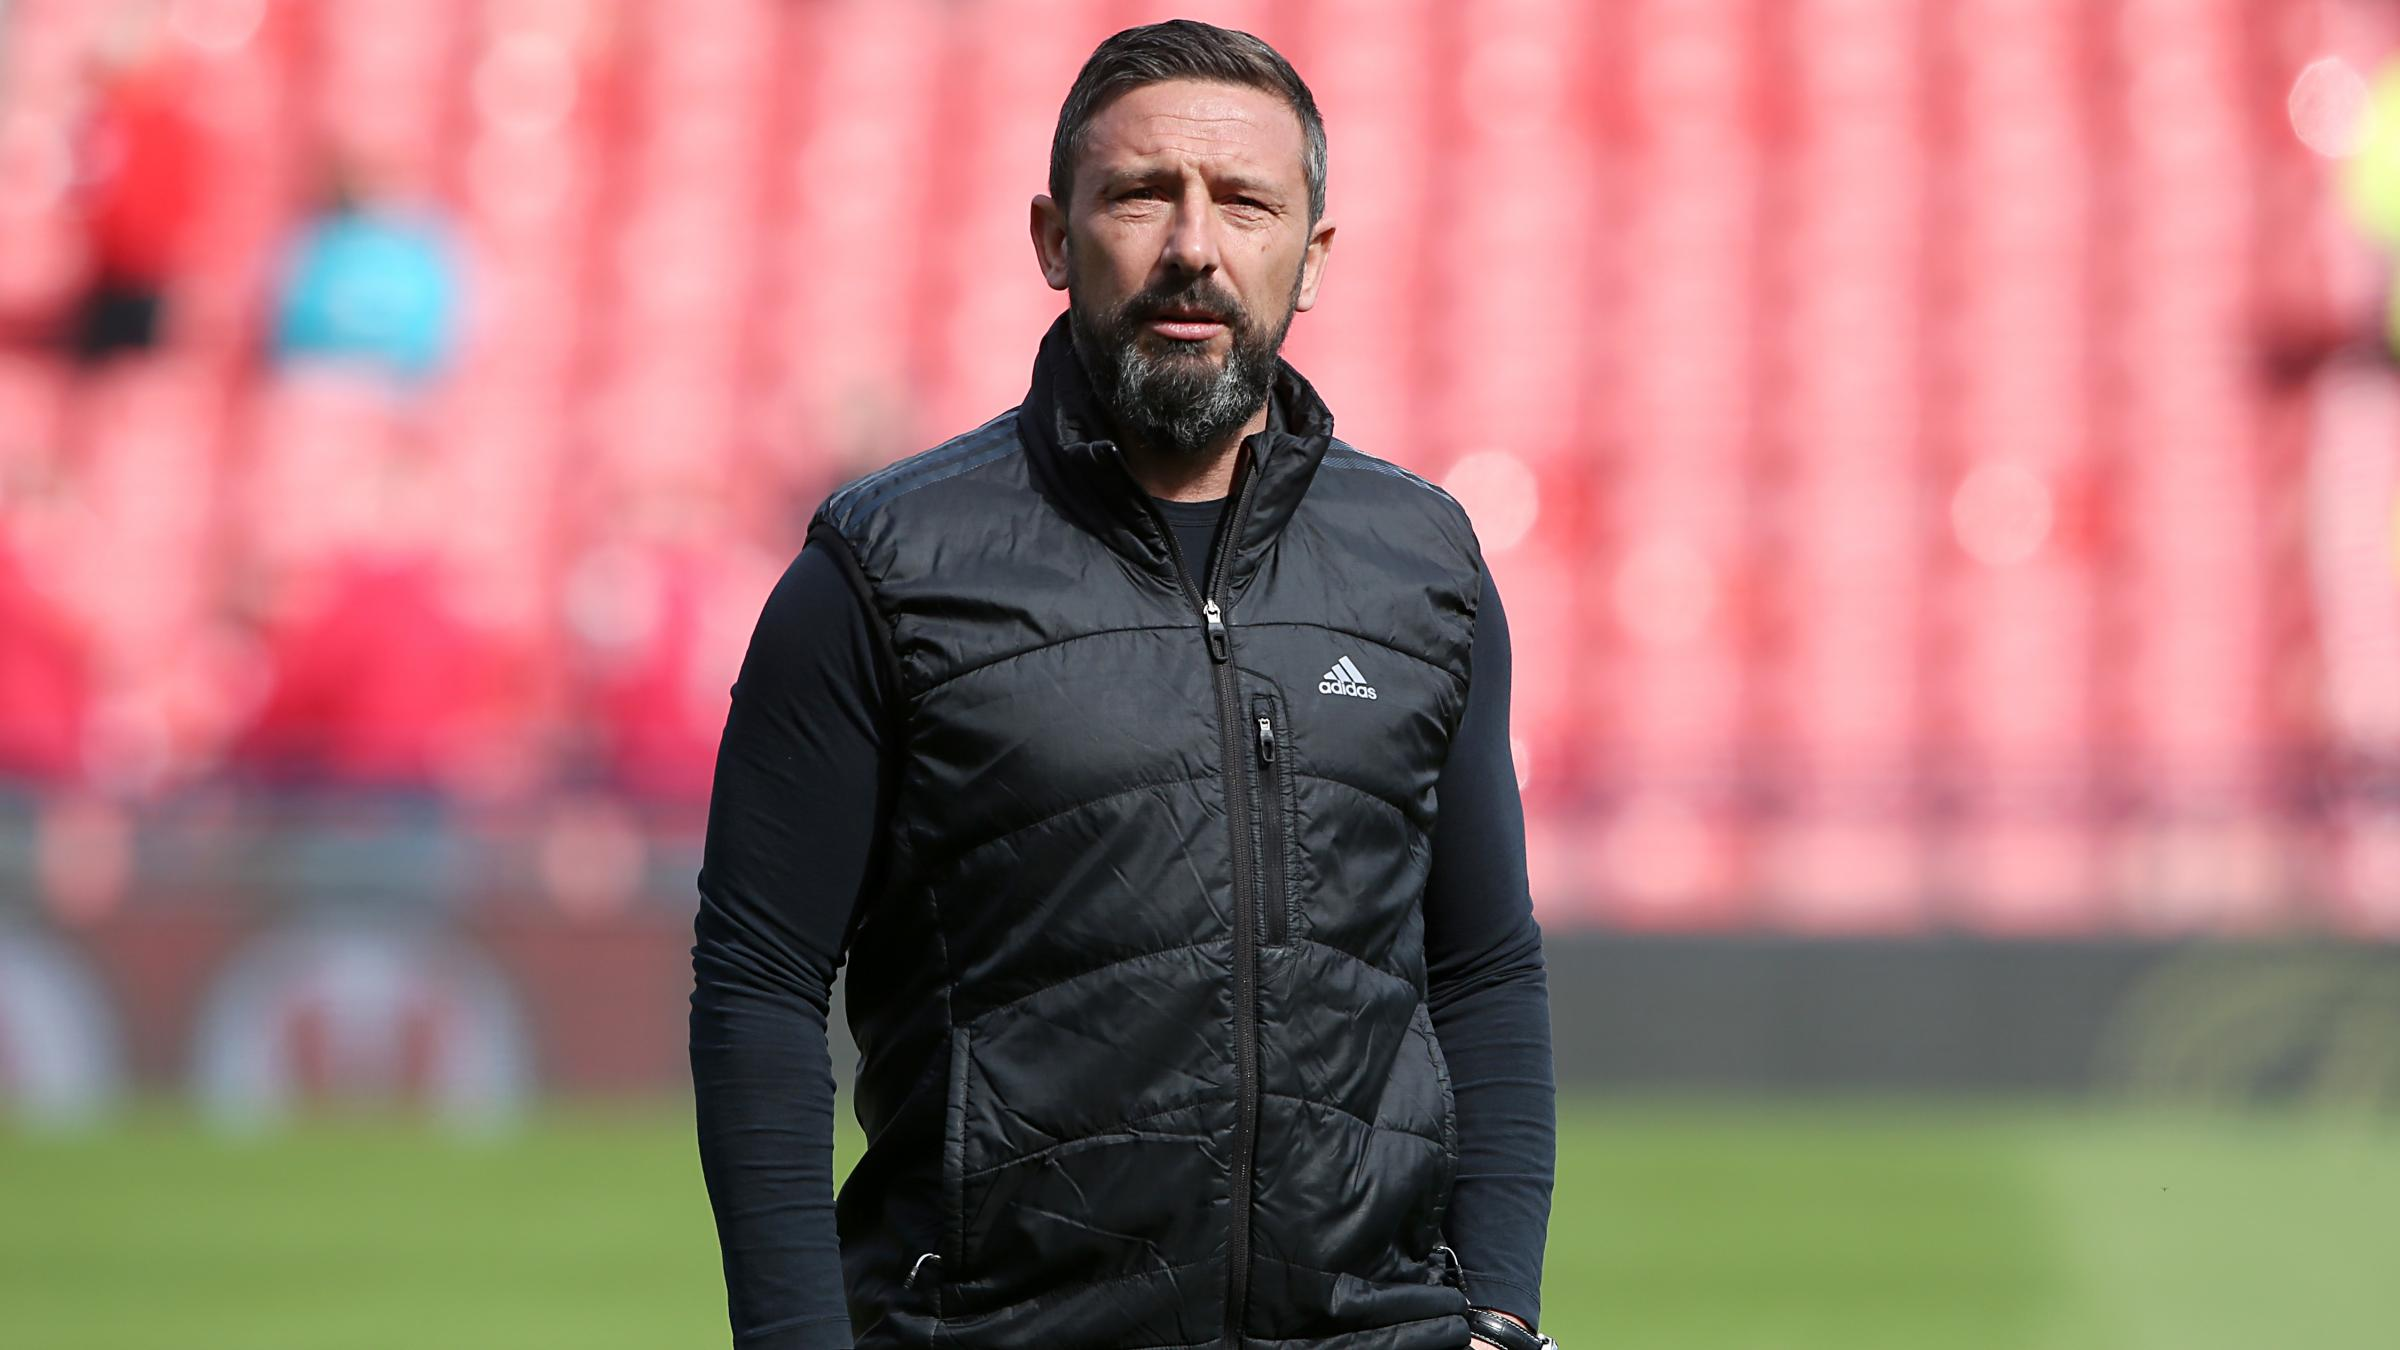 Aberdeen grant Sunderland permission to speak to Derek McInnes